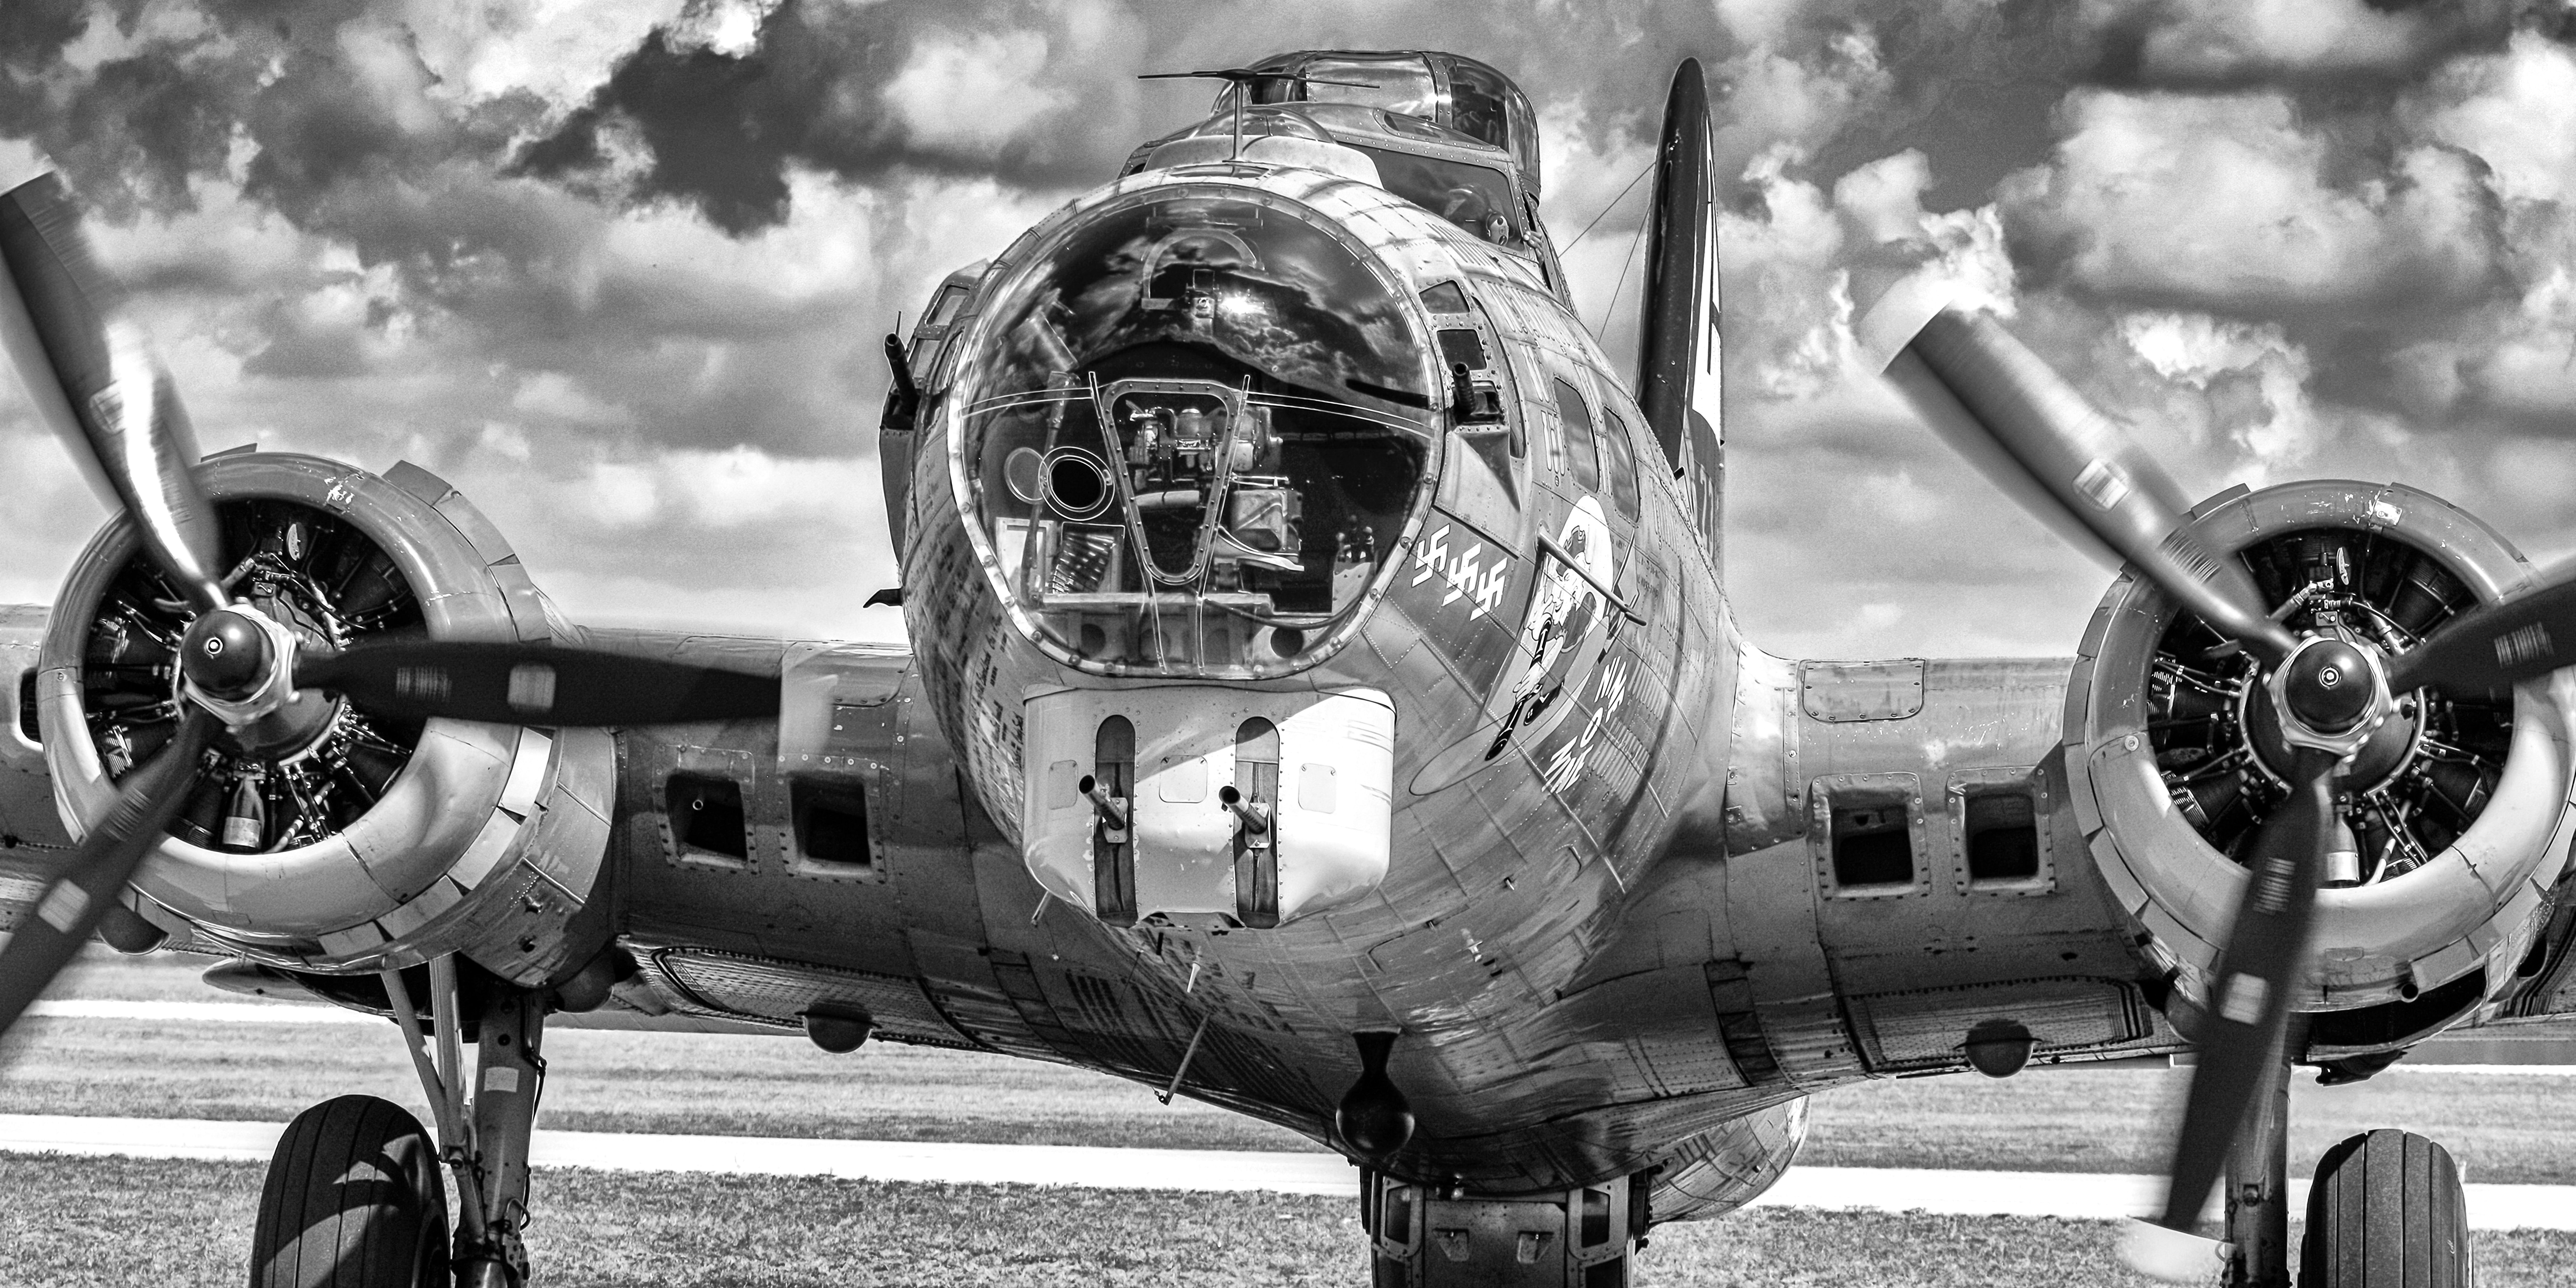 boeing b17 flying fortress bomber plane photo sizes from 12x18 to